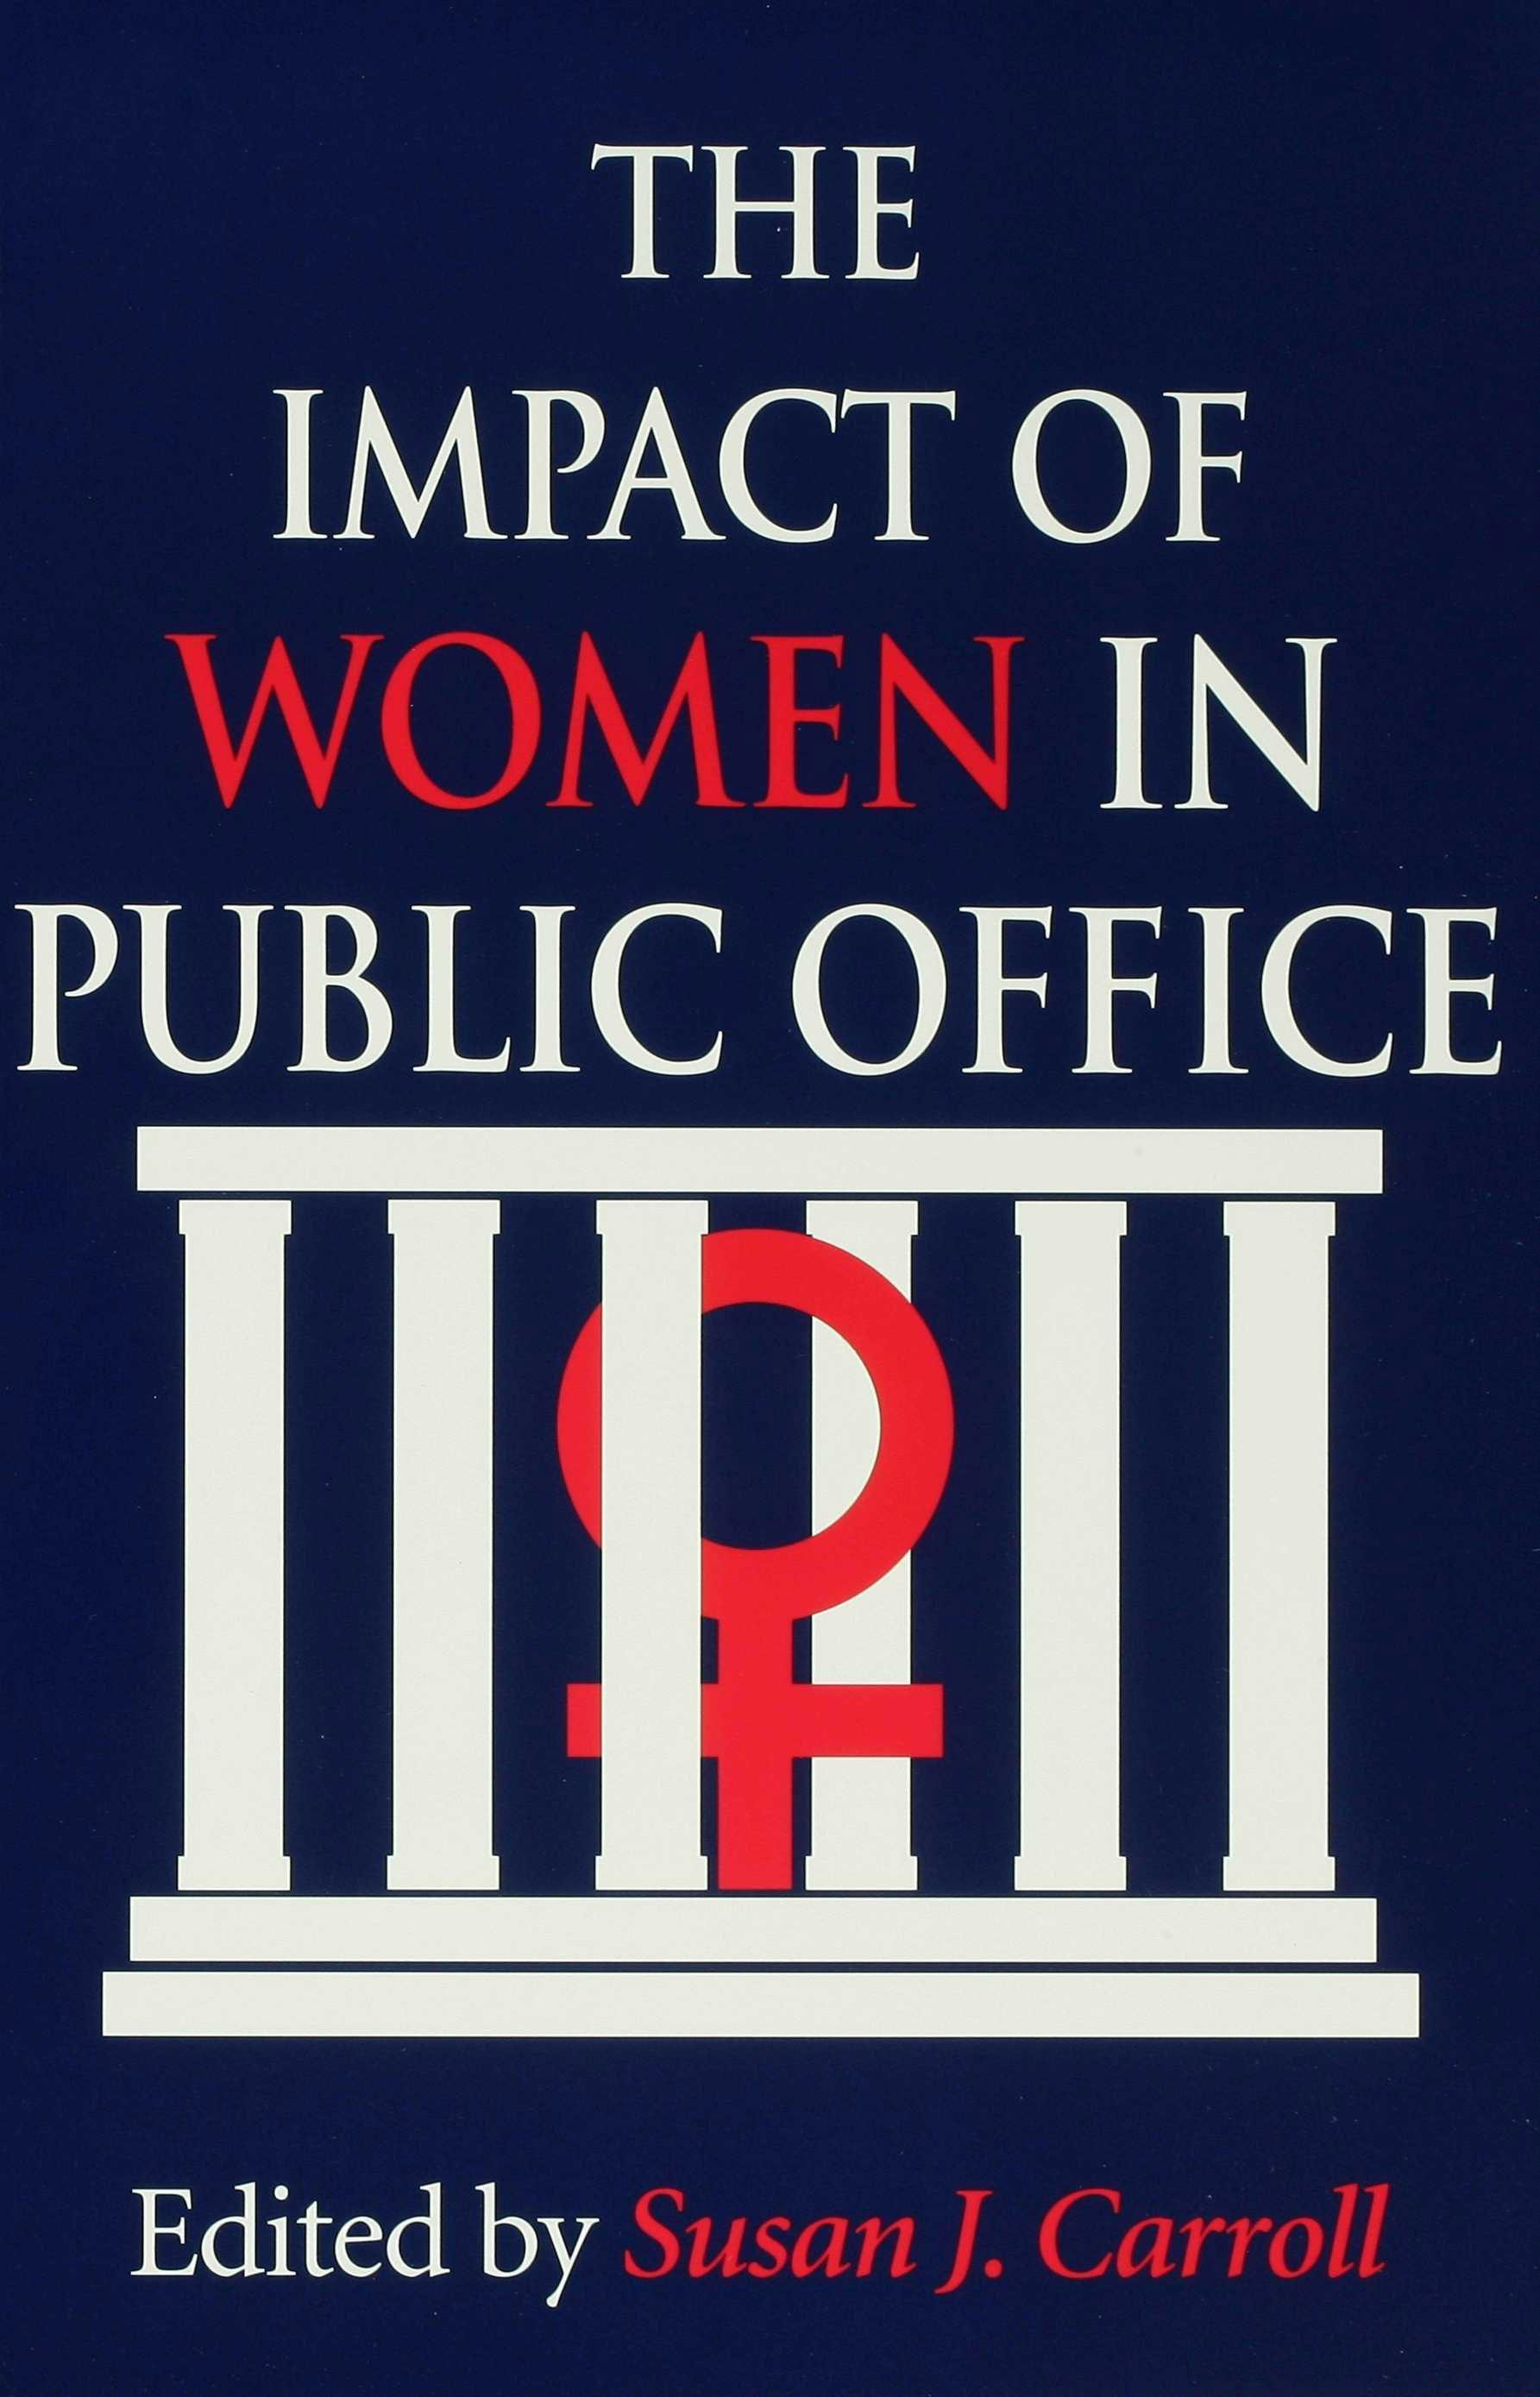 The Impact of Women in Public Office